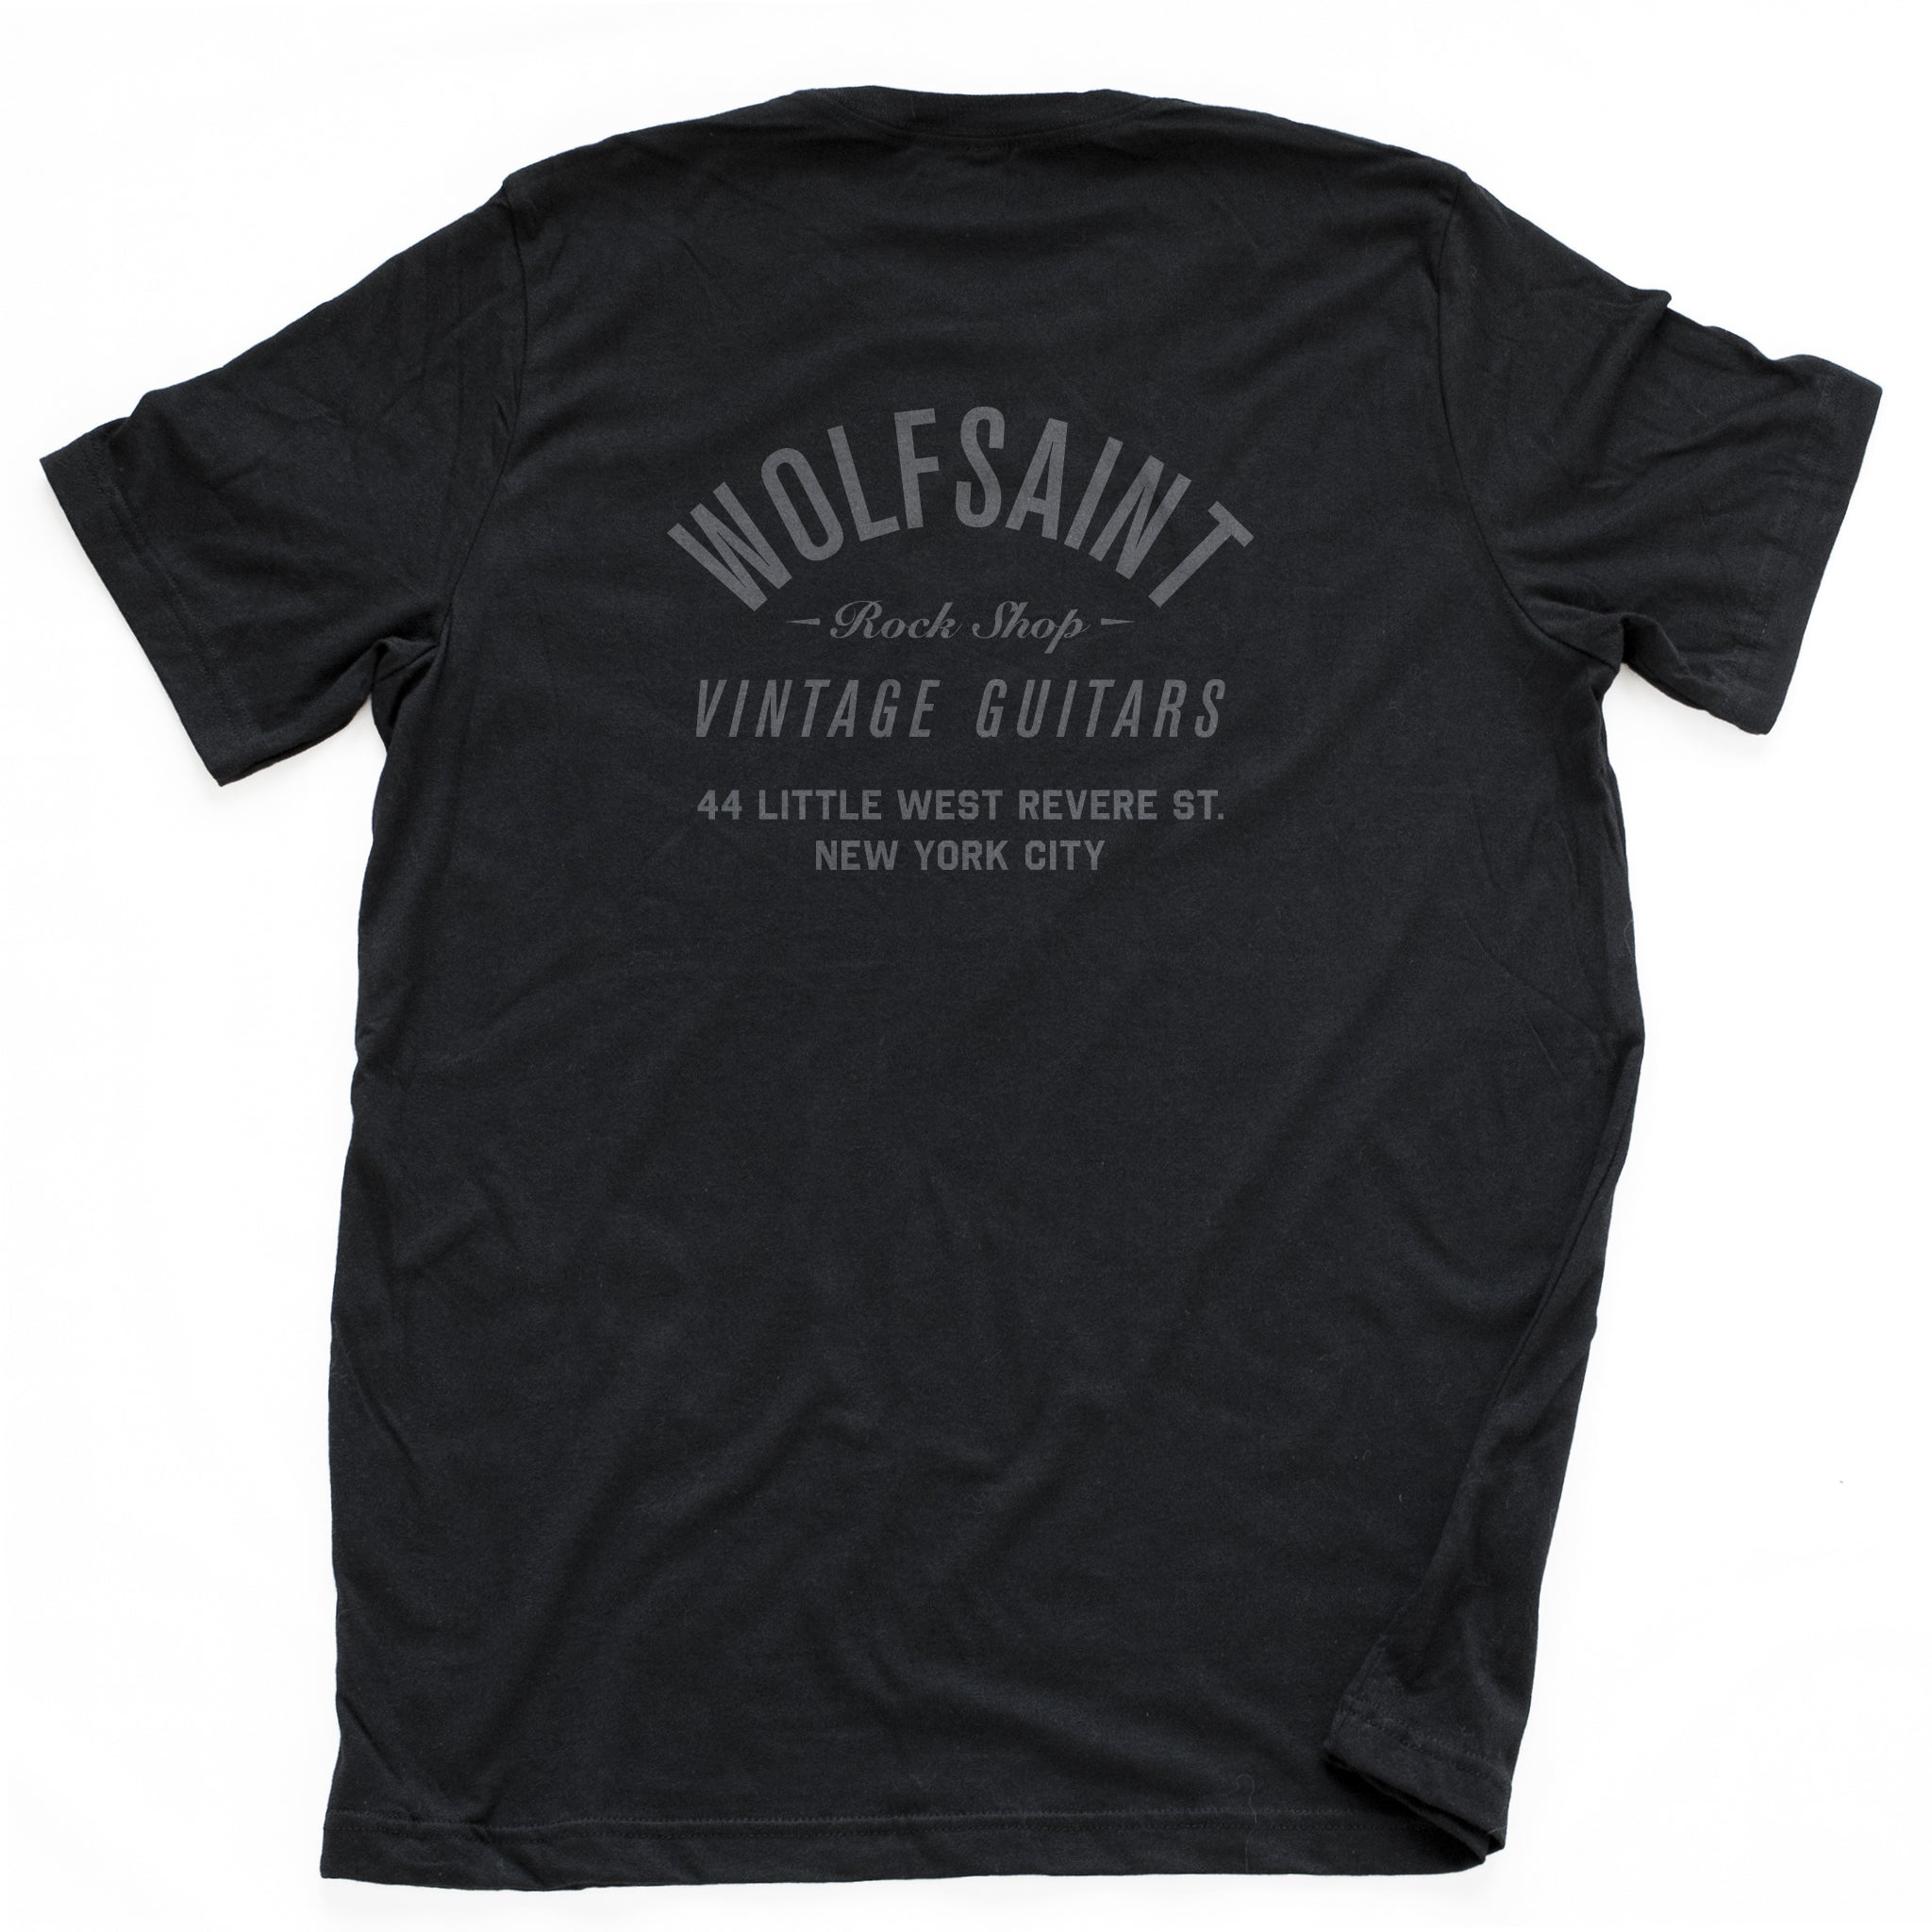 A retro design, vintage-inspired t-shirt for a fictional vintage guitars shop. Featuring a graphic on the front of a Gibson Es-335 guitar and the Wolfsaint script logo, and an imaginary address on the back. From Wolfsaint.net